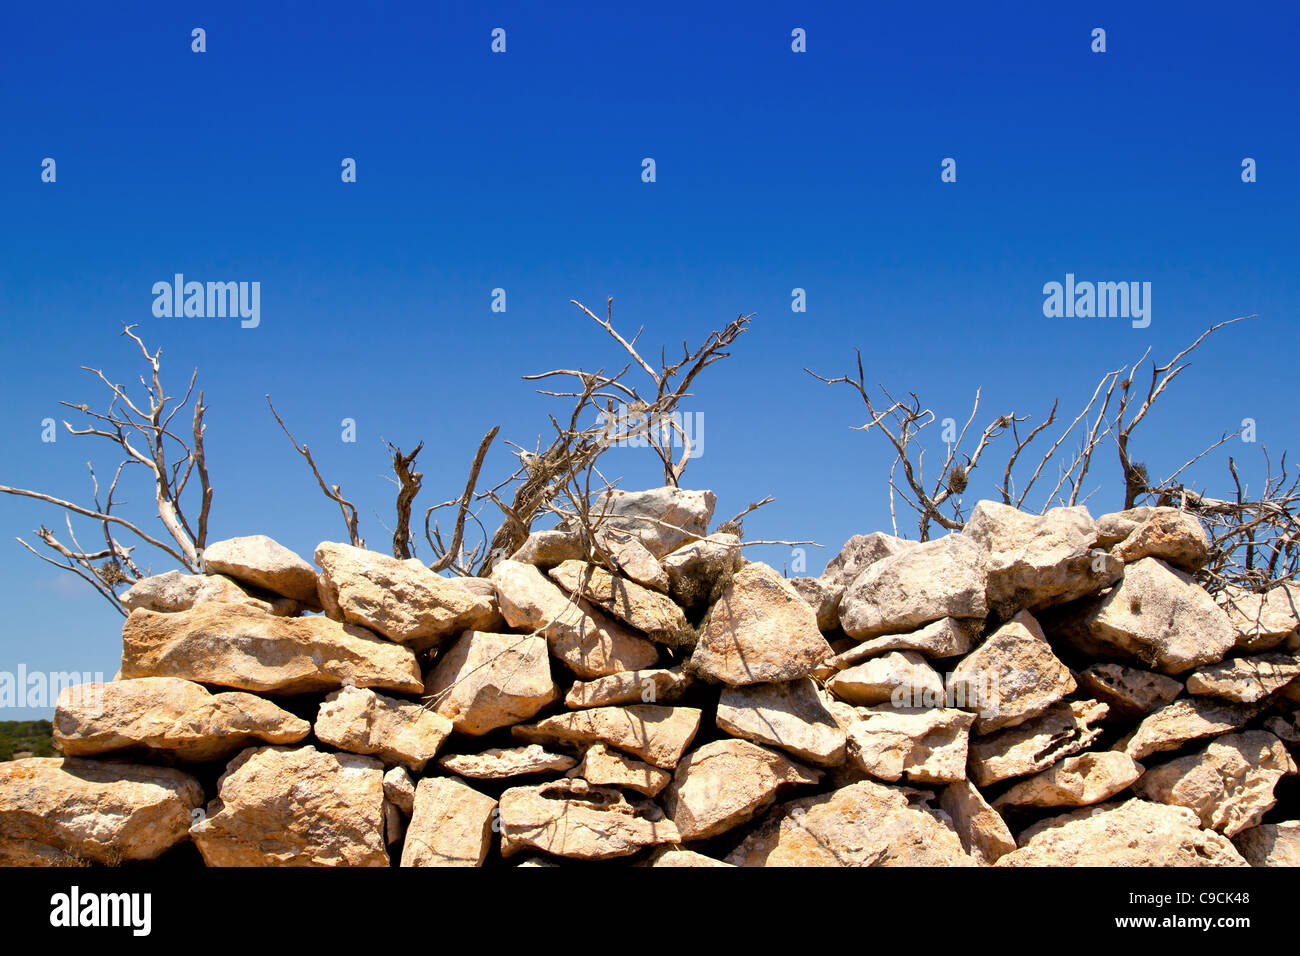 Mediterranean dried branches and masonry wall as Balearic symbol - Stock Image